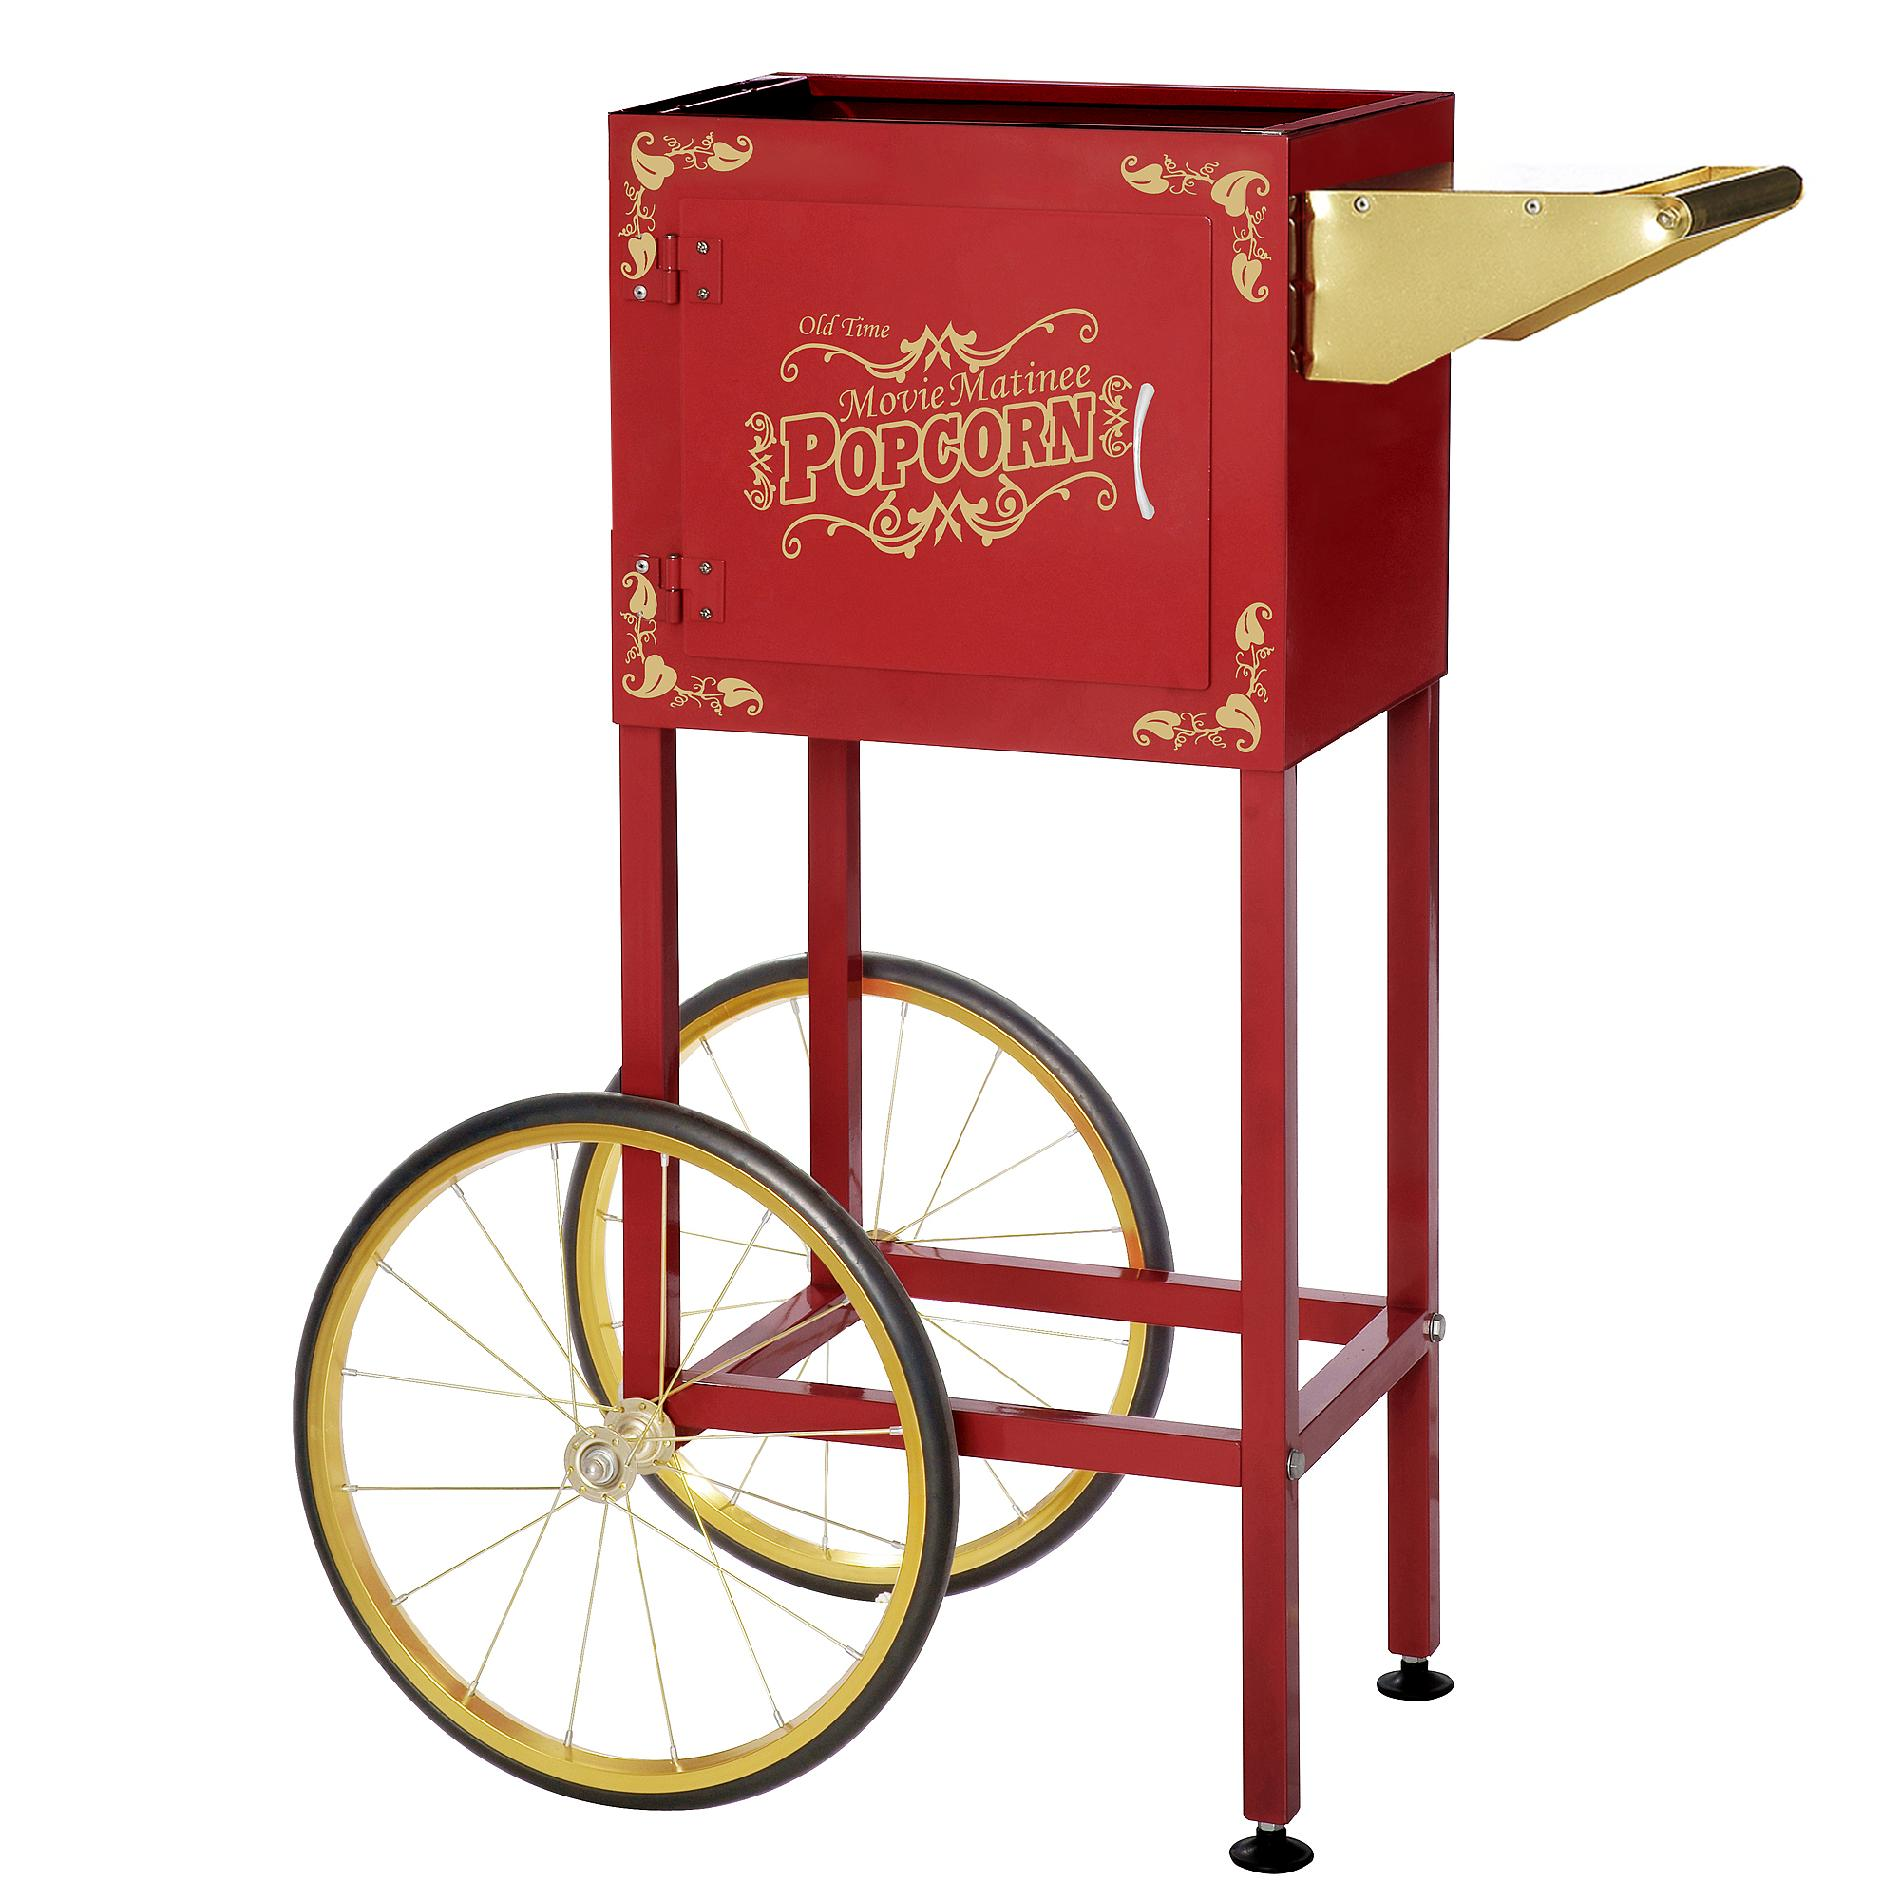 Great Northern Popcorn Red Matinee Movie Eight Ounce Antique Popcorn Machine and Cart